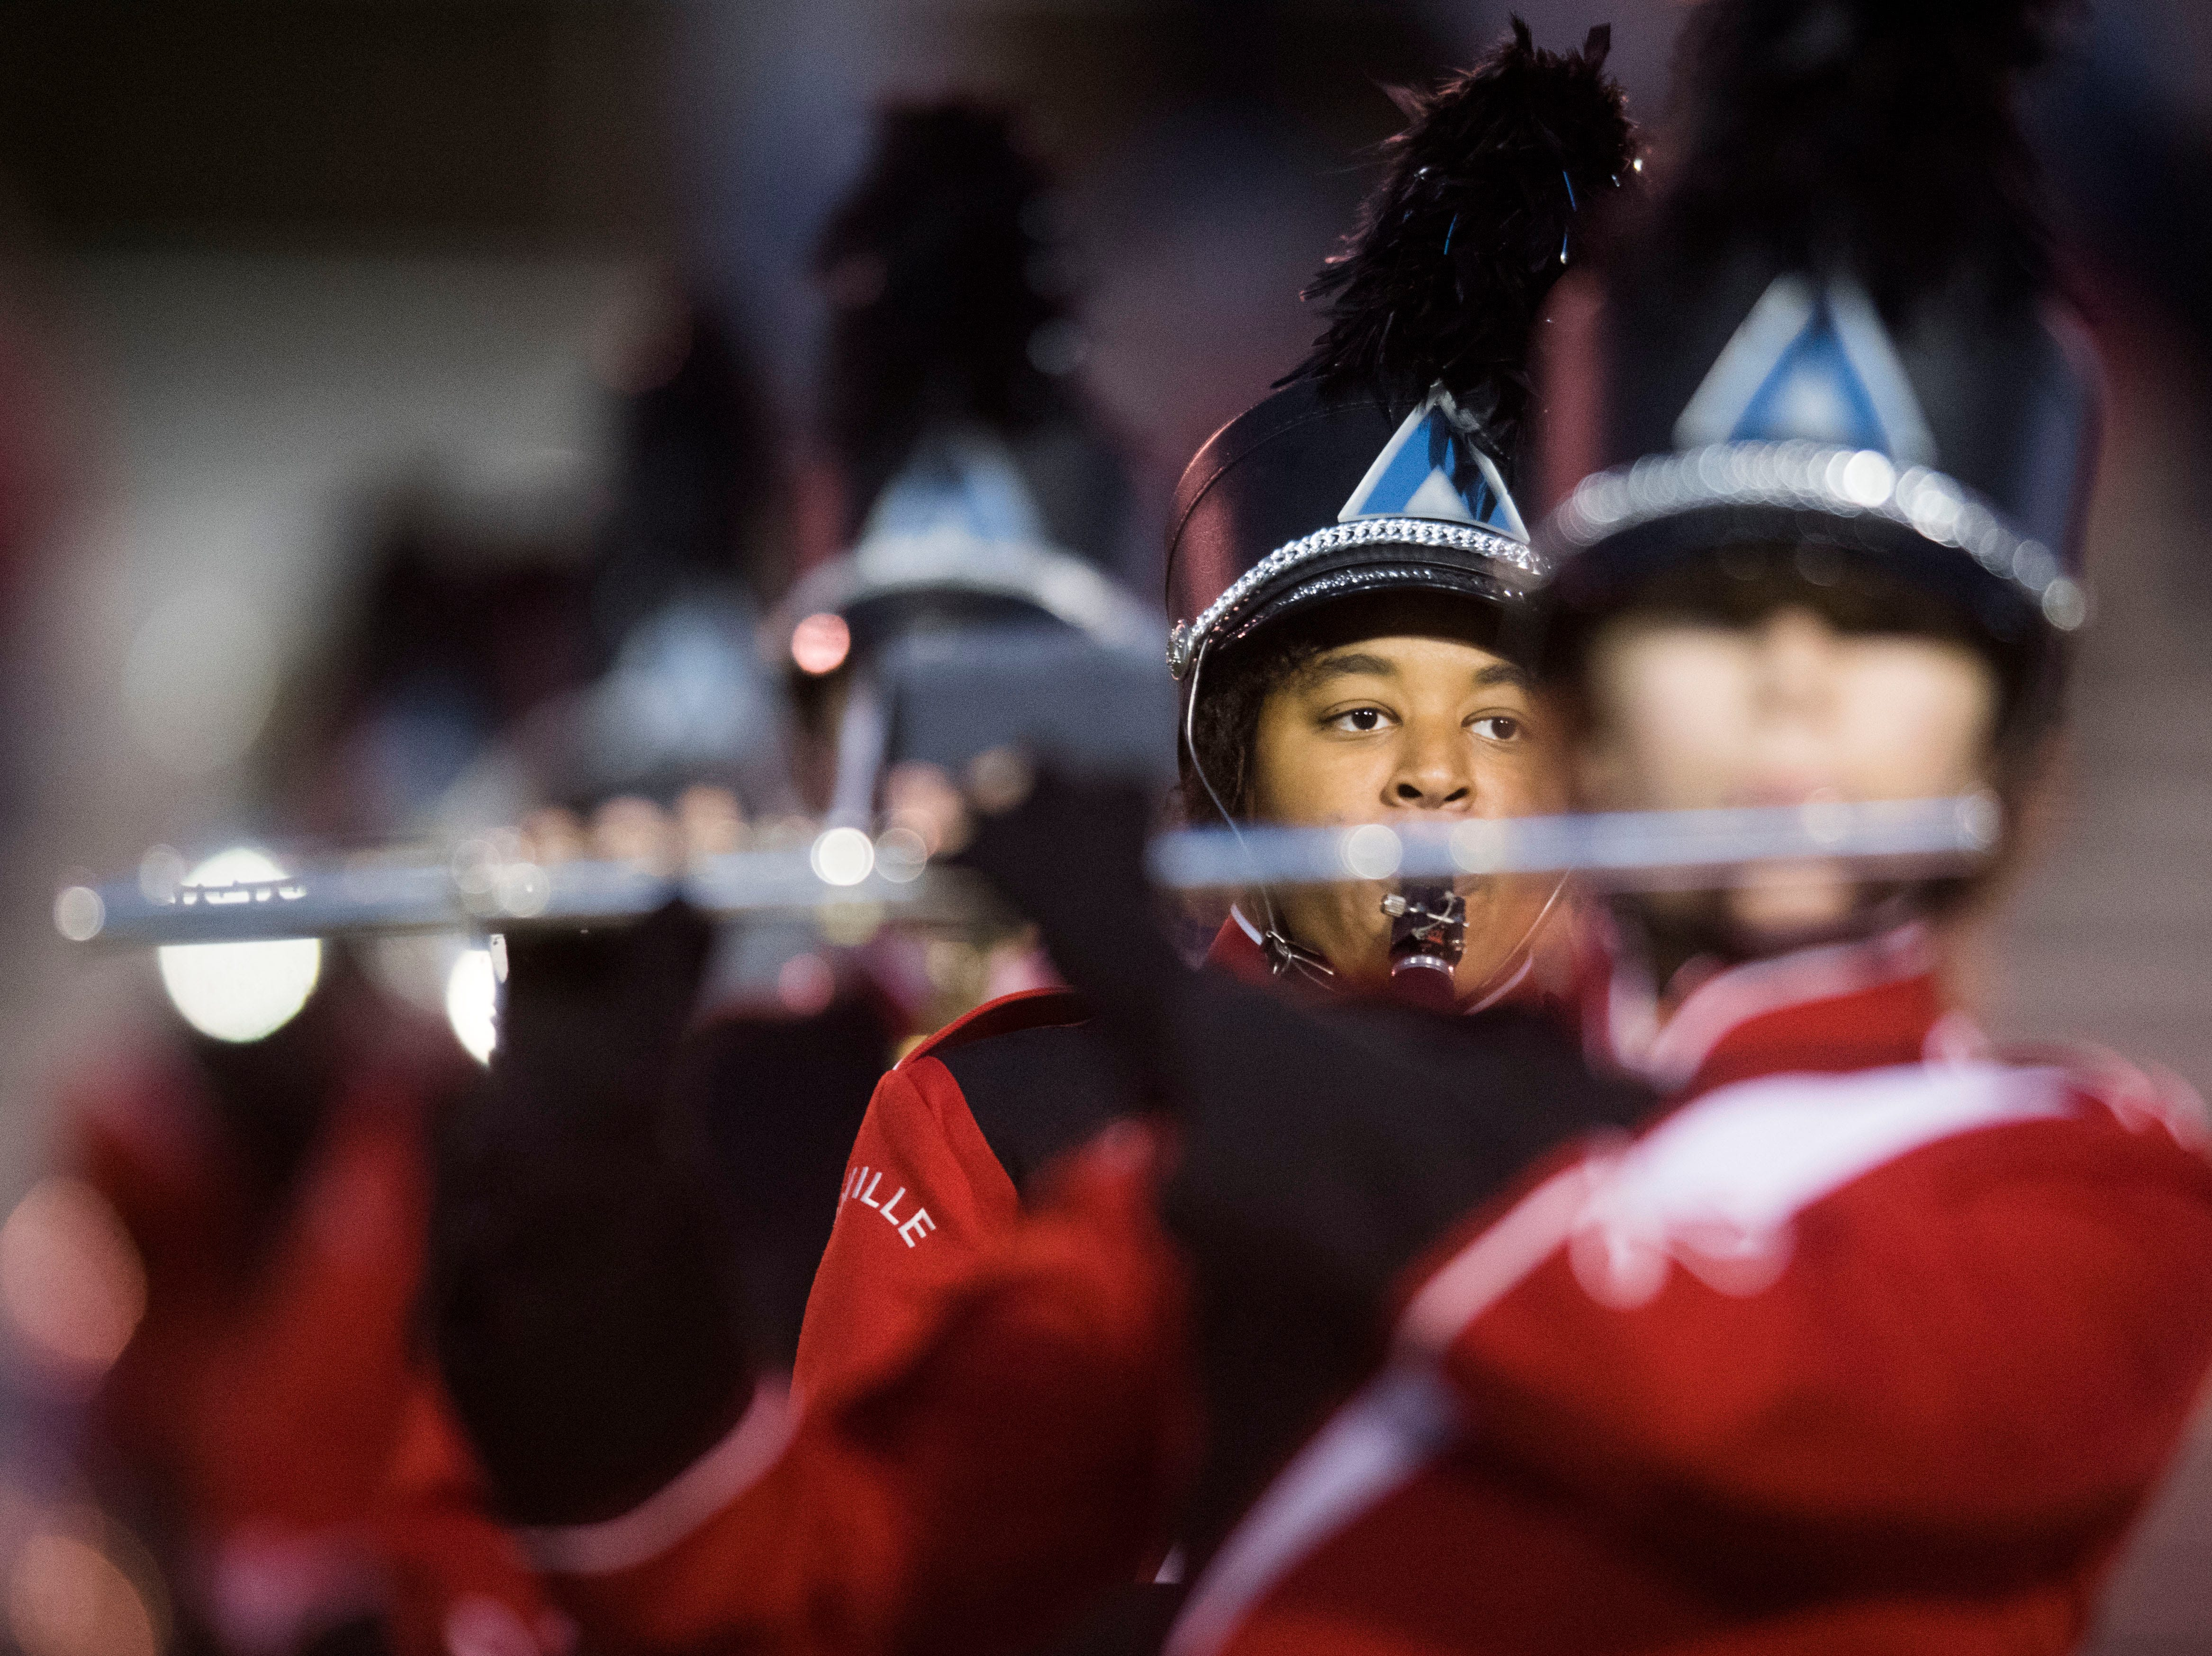 Maryville's band performs during a first round playoff game between Maryville and Bearden at Maryville, Friday, Nov. 2, 2018. Maryville defeated Bearden 28-7.